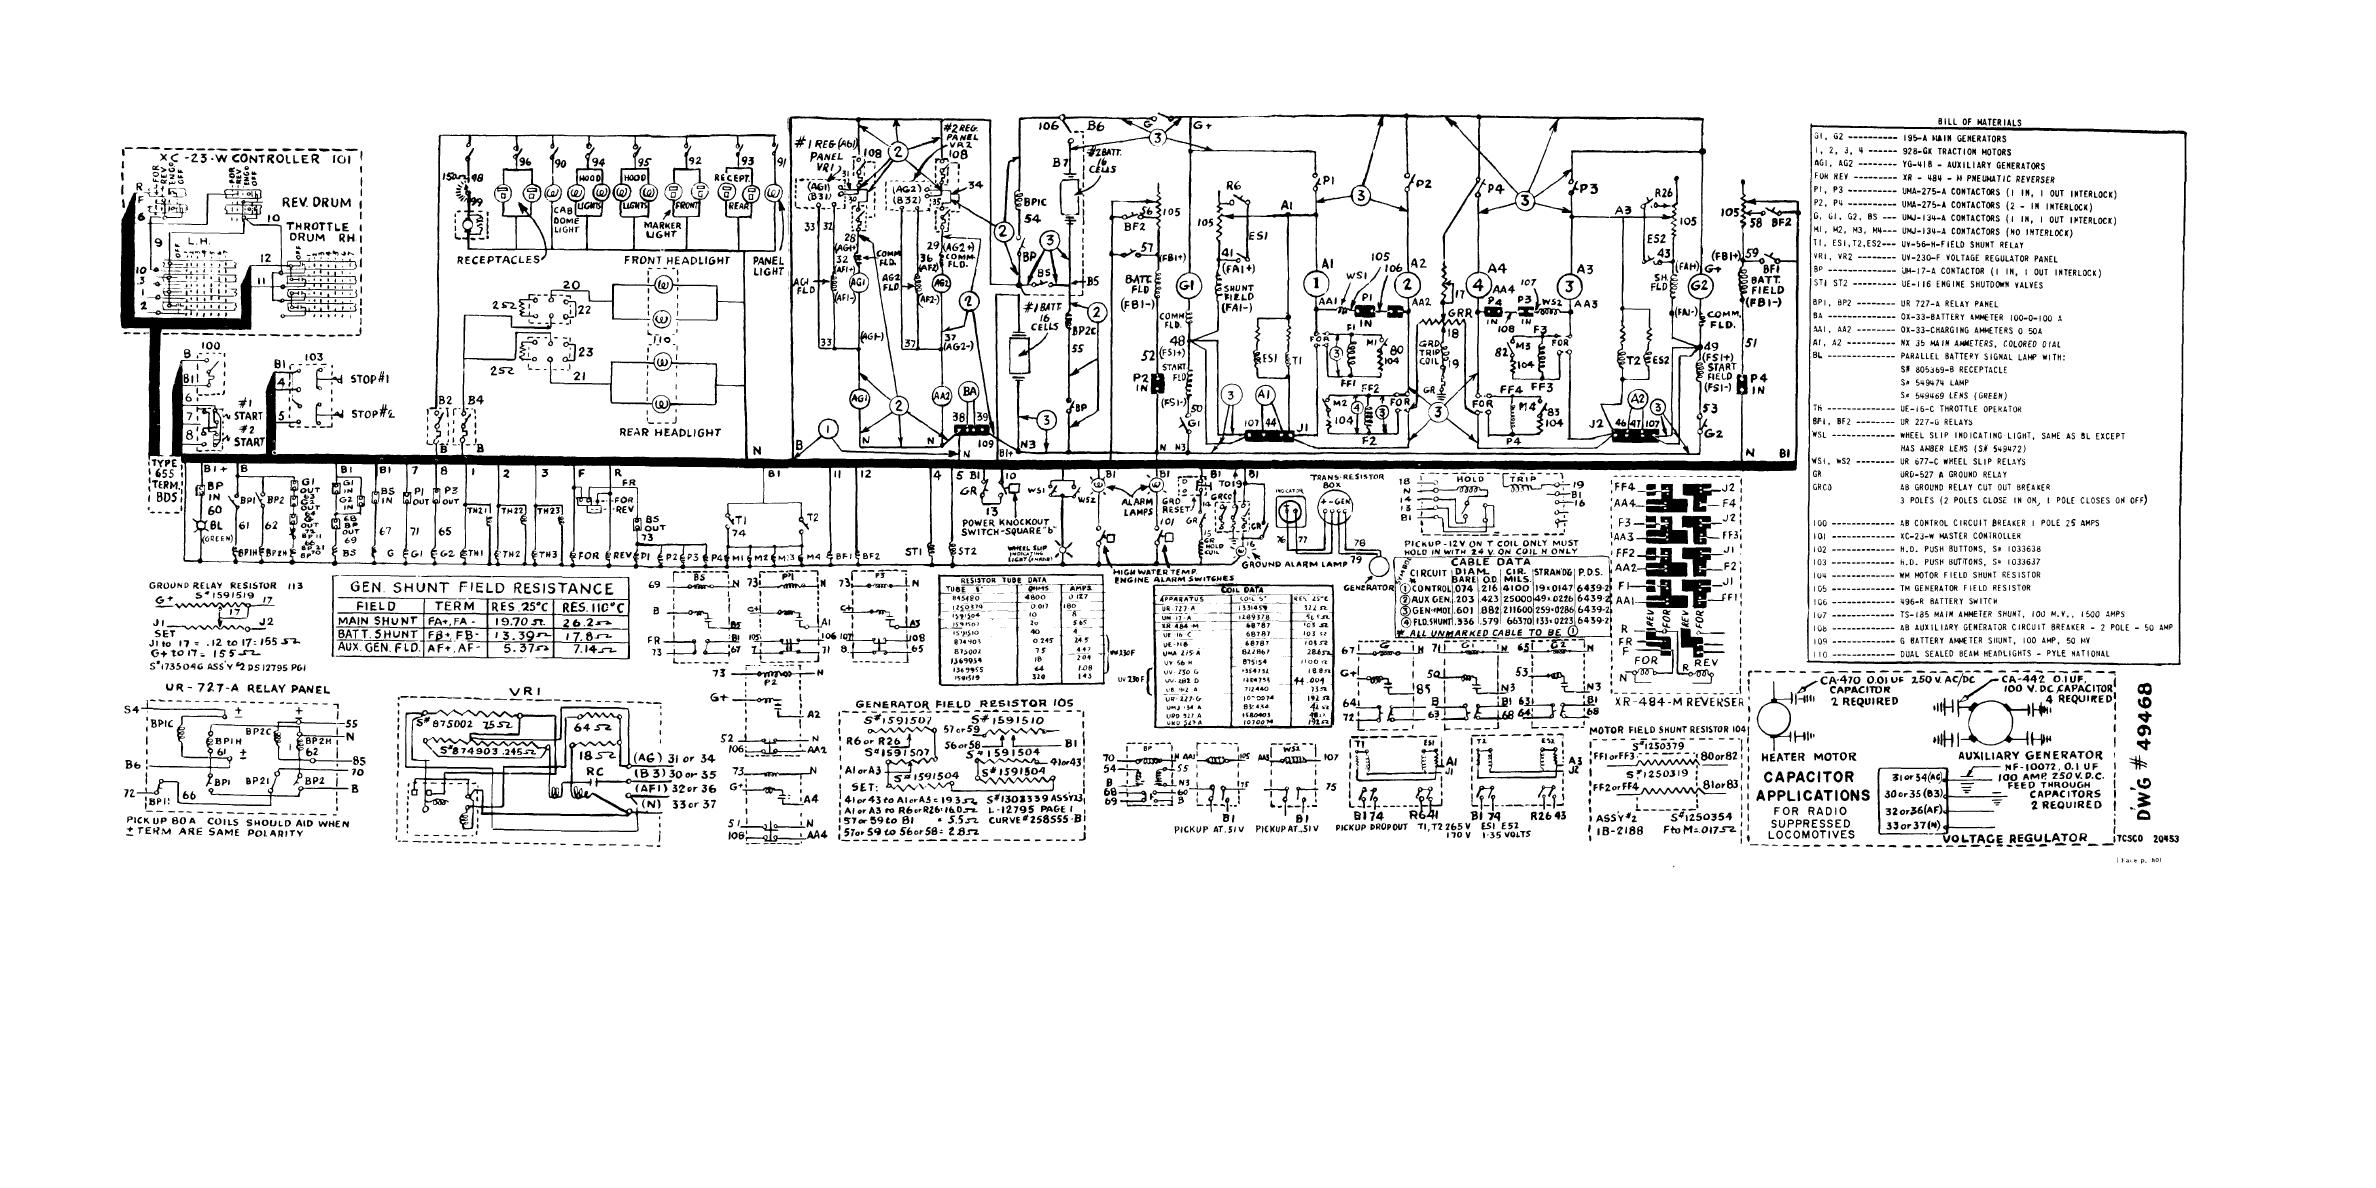 Figure 44  Locomotive Wiring Diagram